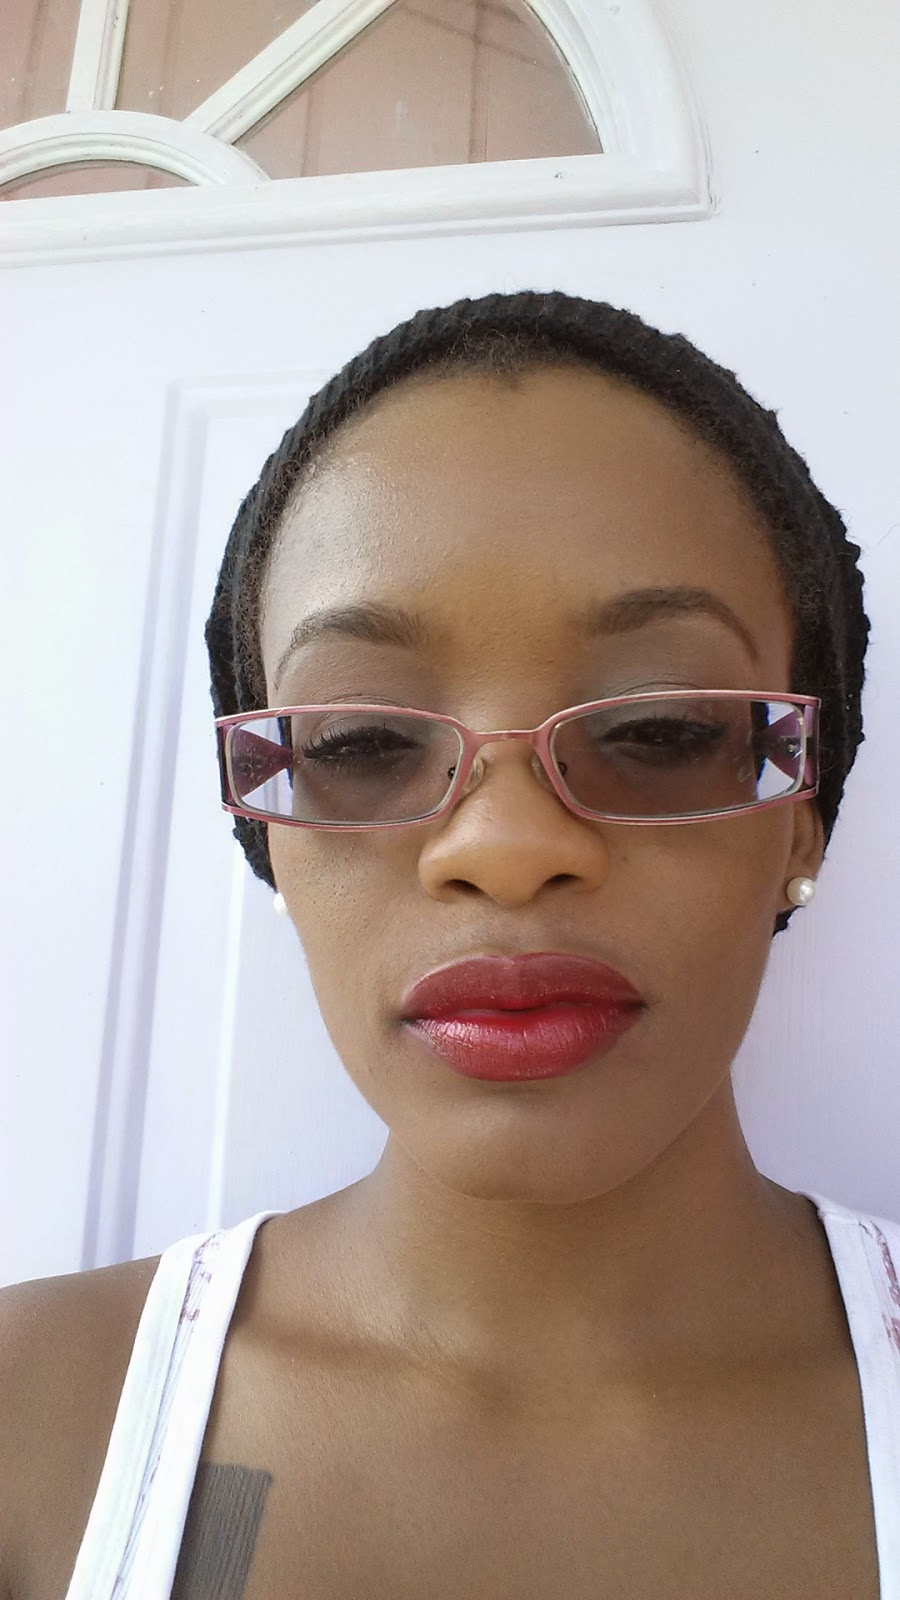 L.A.Colors Lipstick 'CP230' and NYX Lipliner Pencil 'Plum' swatch - www.modenmakeup.com